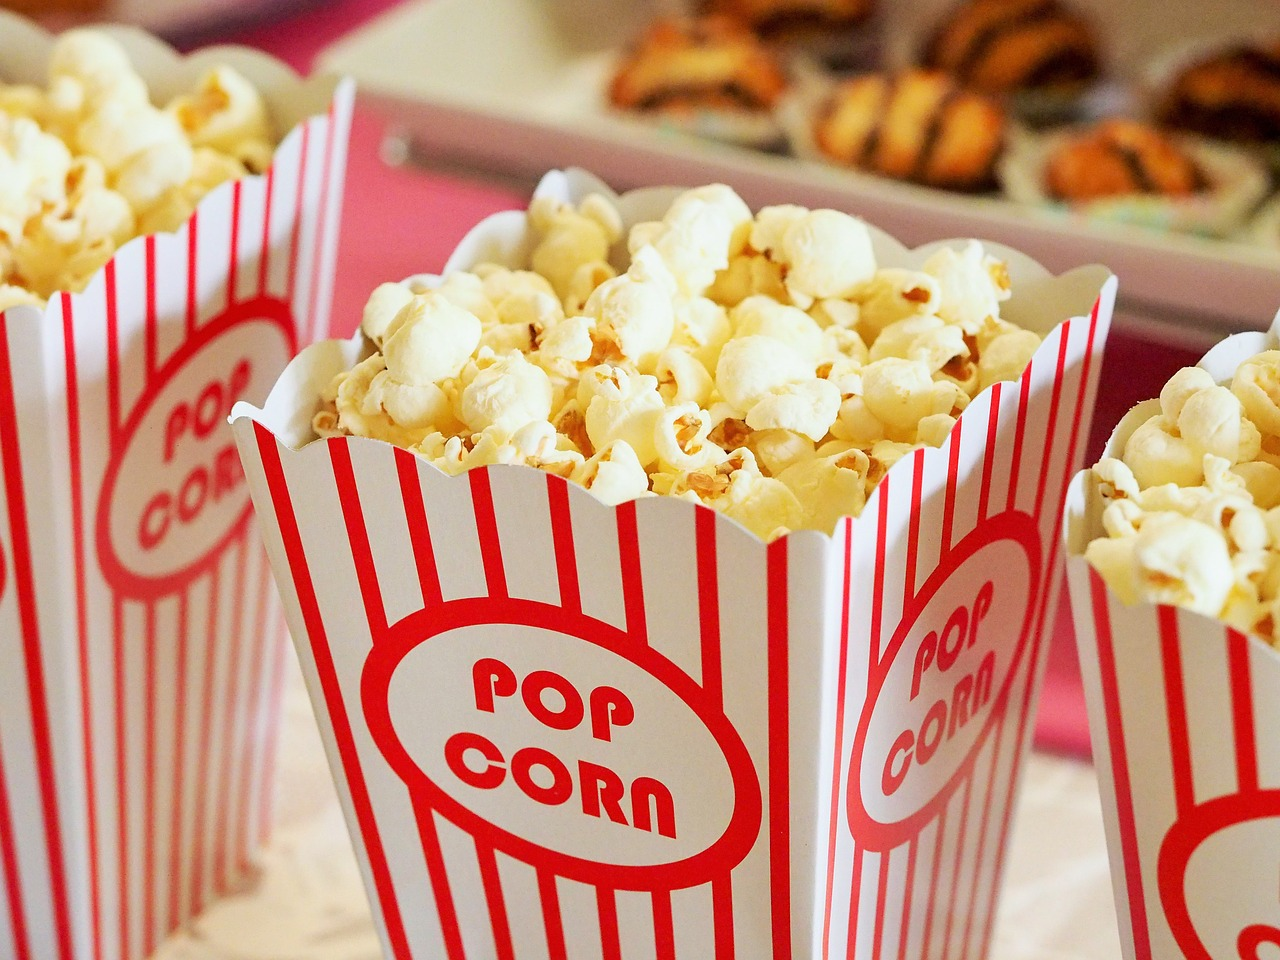 Close up of 3 striped red and white popcorn containers with popcorn.